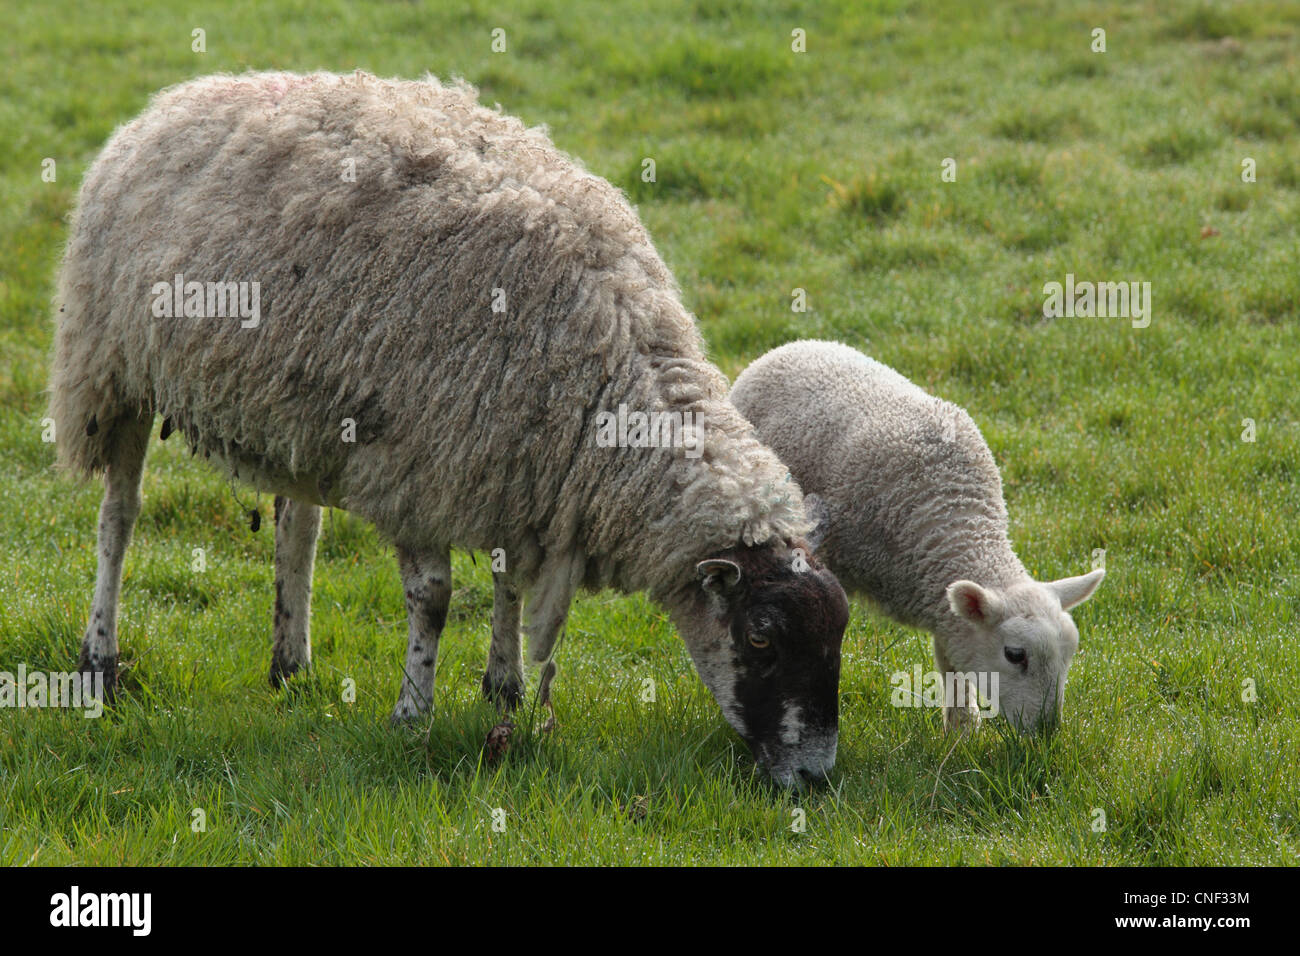 A ewe and her baby lamb in a field during lambing season in Nidderdale, Yorkshire Stock Photo